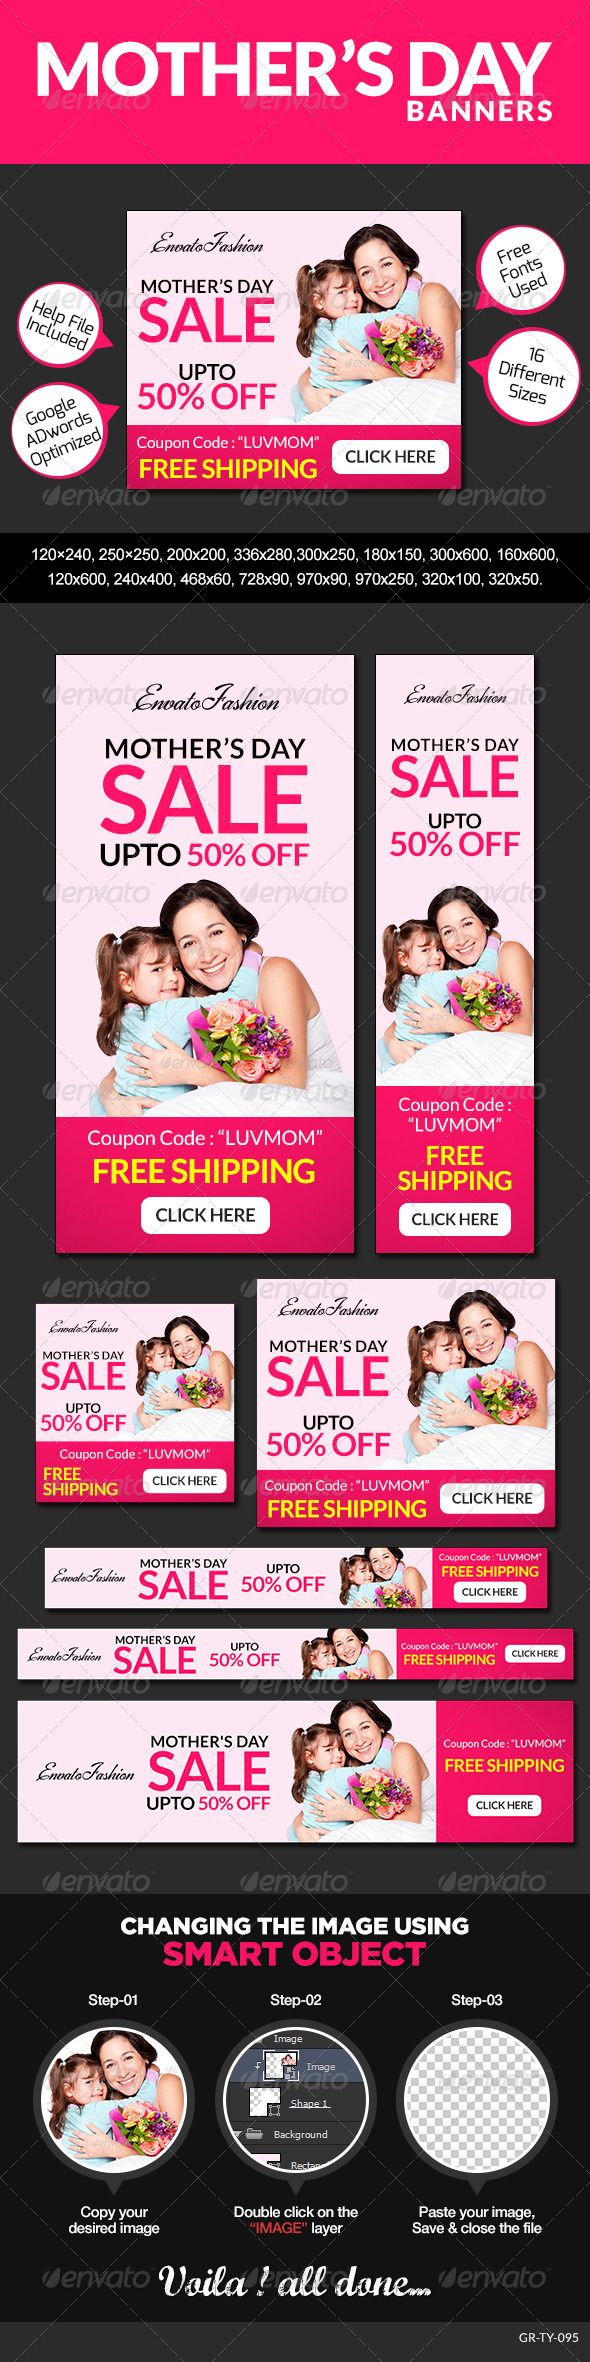 Mother's Day Banners Template PSD   Buy and Download: http://graphicriver.net/item/mothers-day-banners/8565653?WT.ac=category_thumb&WT.z_author=doto&ref=ksioks